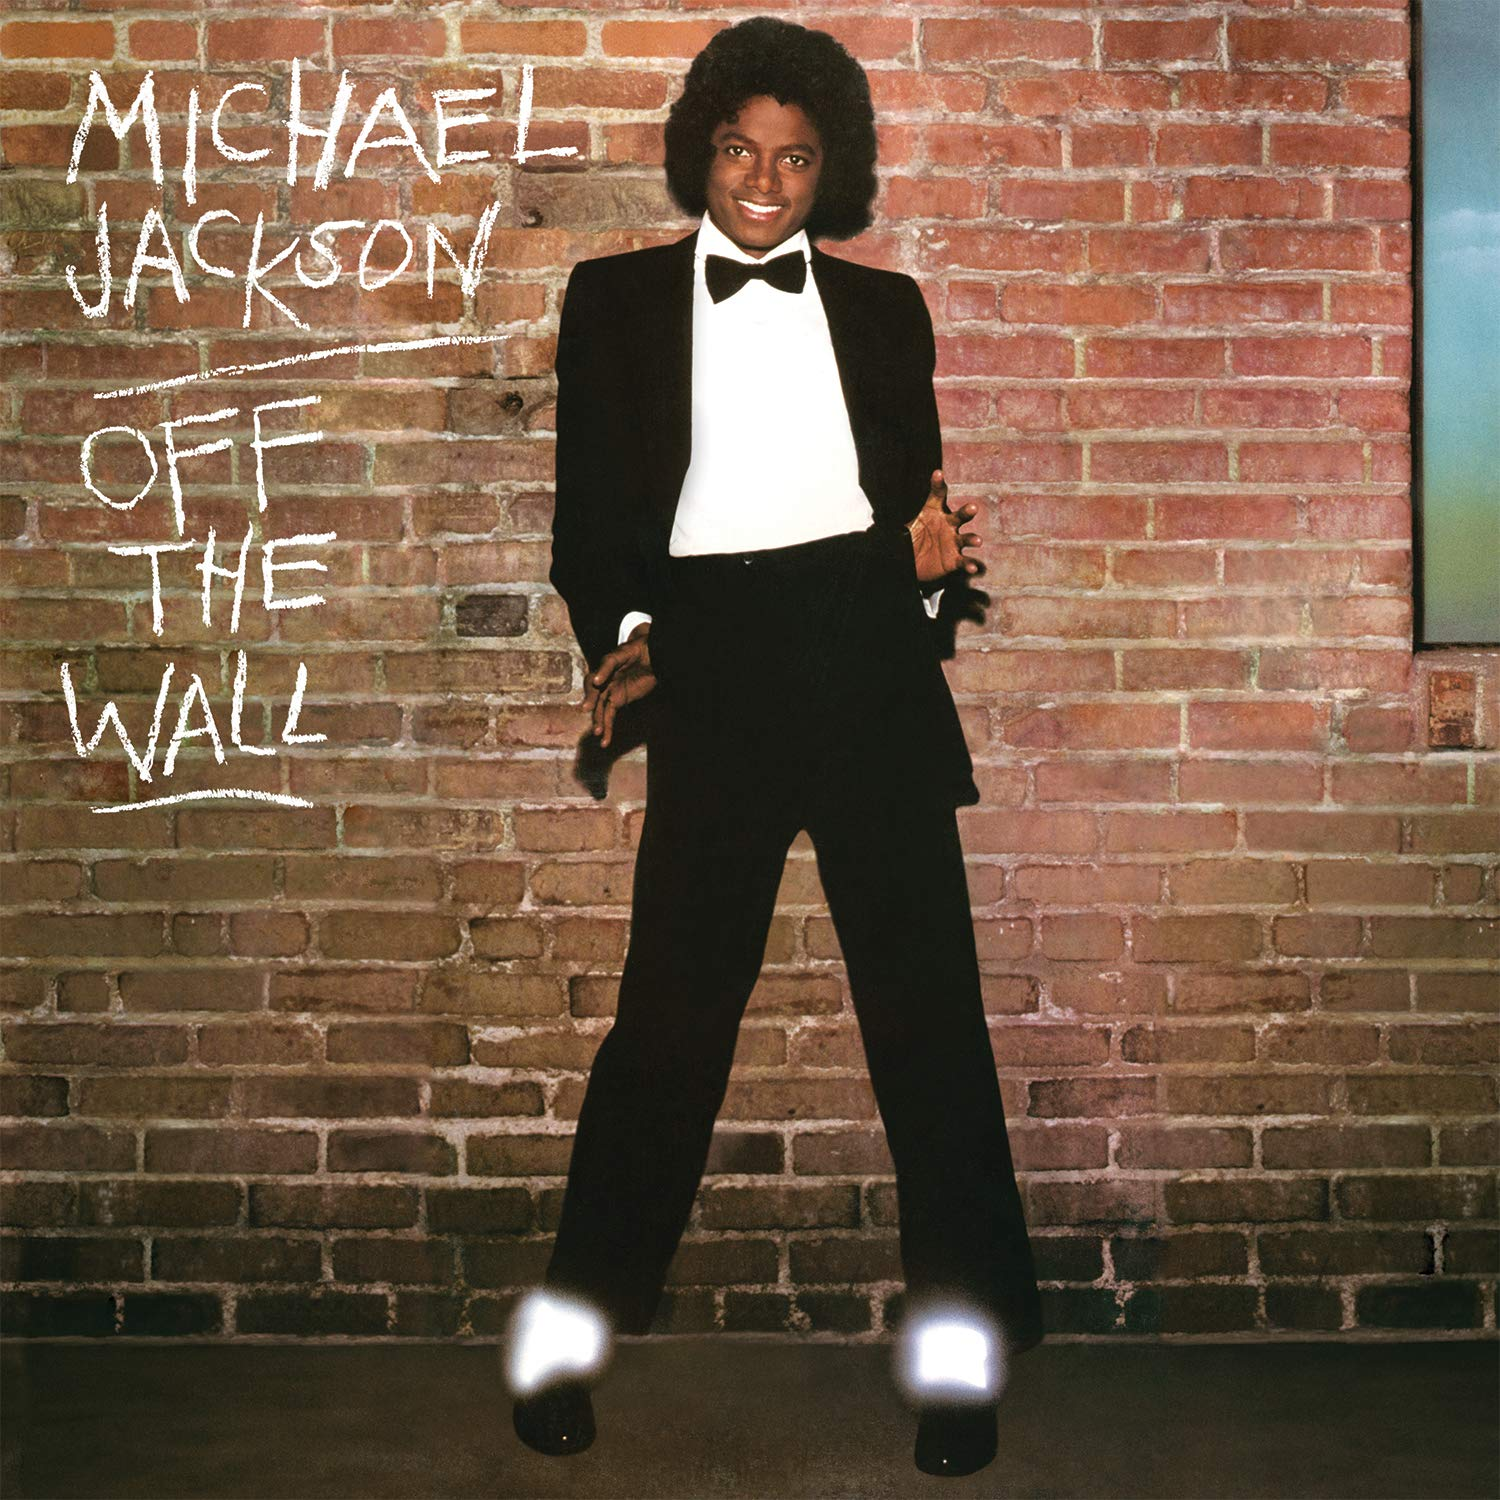 Off The Wall : Michael Jackson: Amazon.fr: Musique